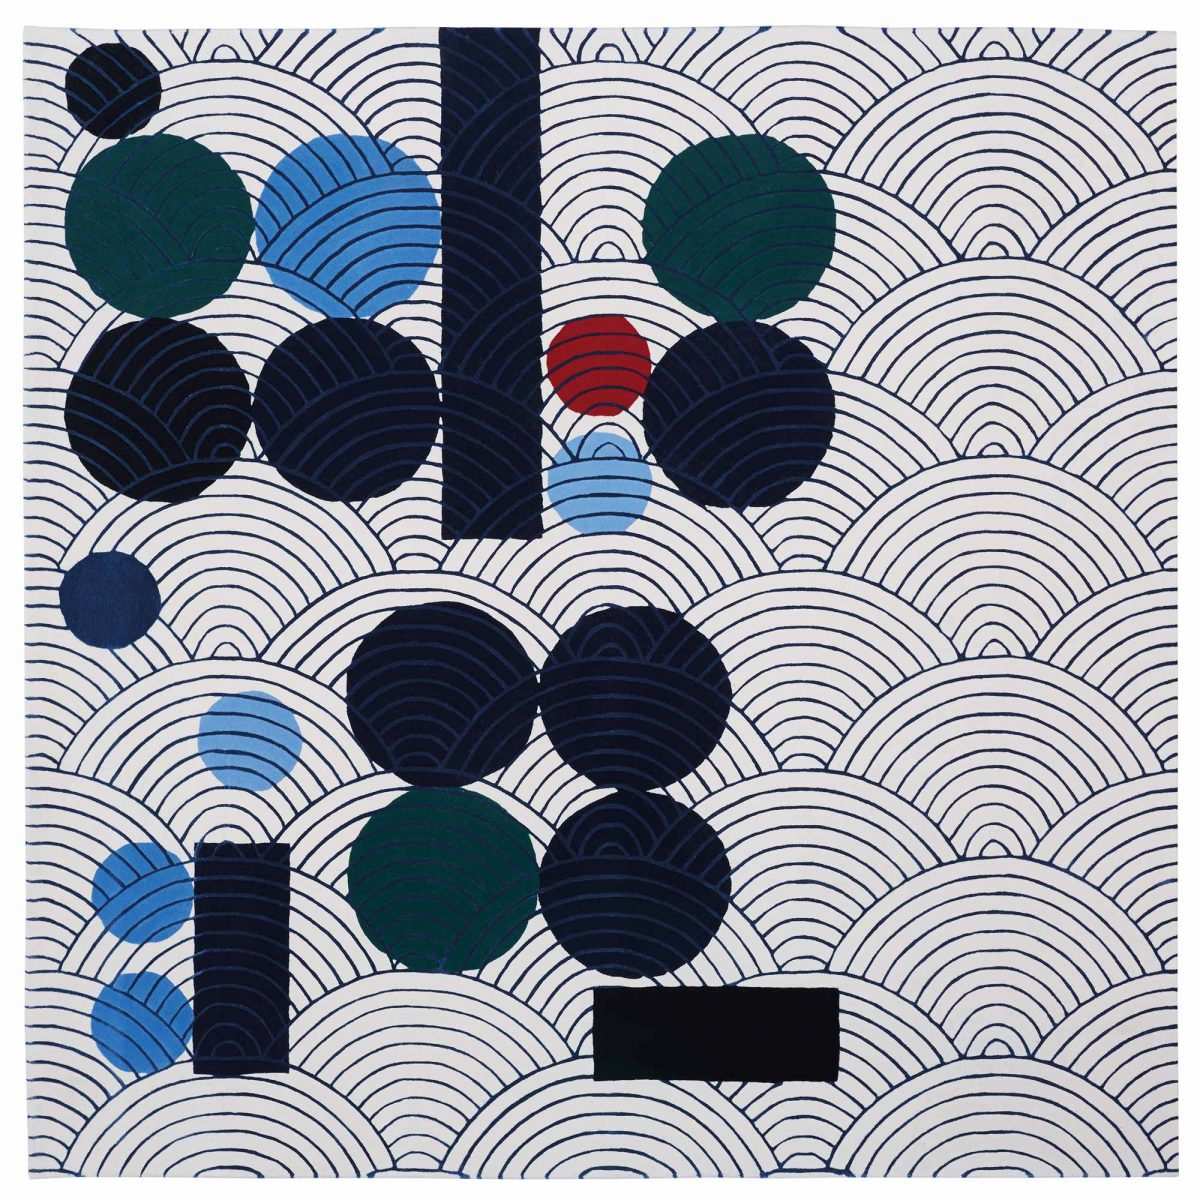 1-japanese-abstractions-04-rugs